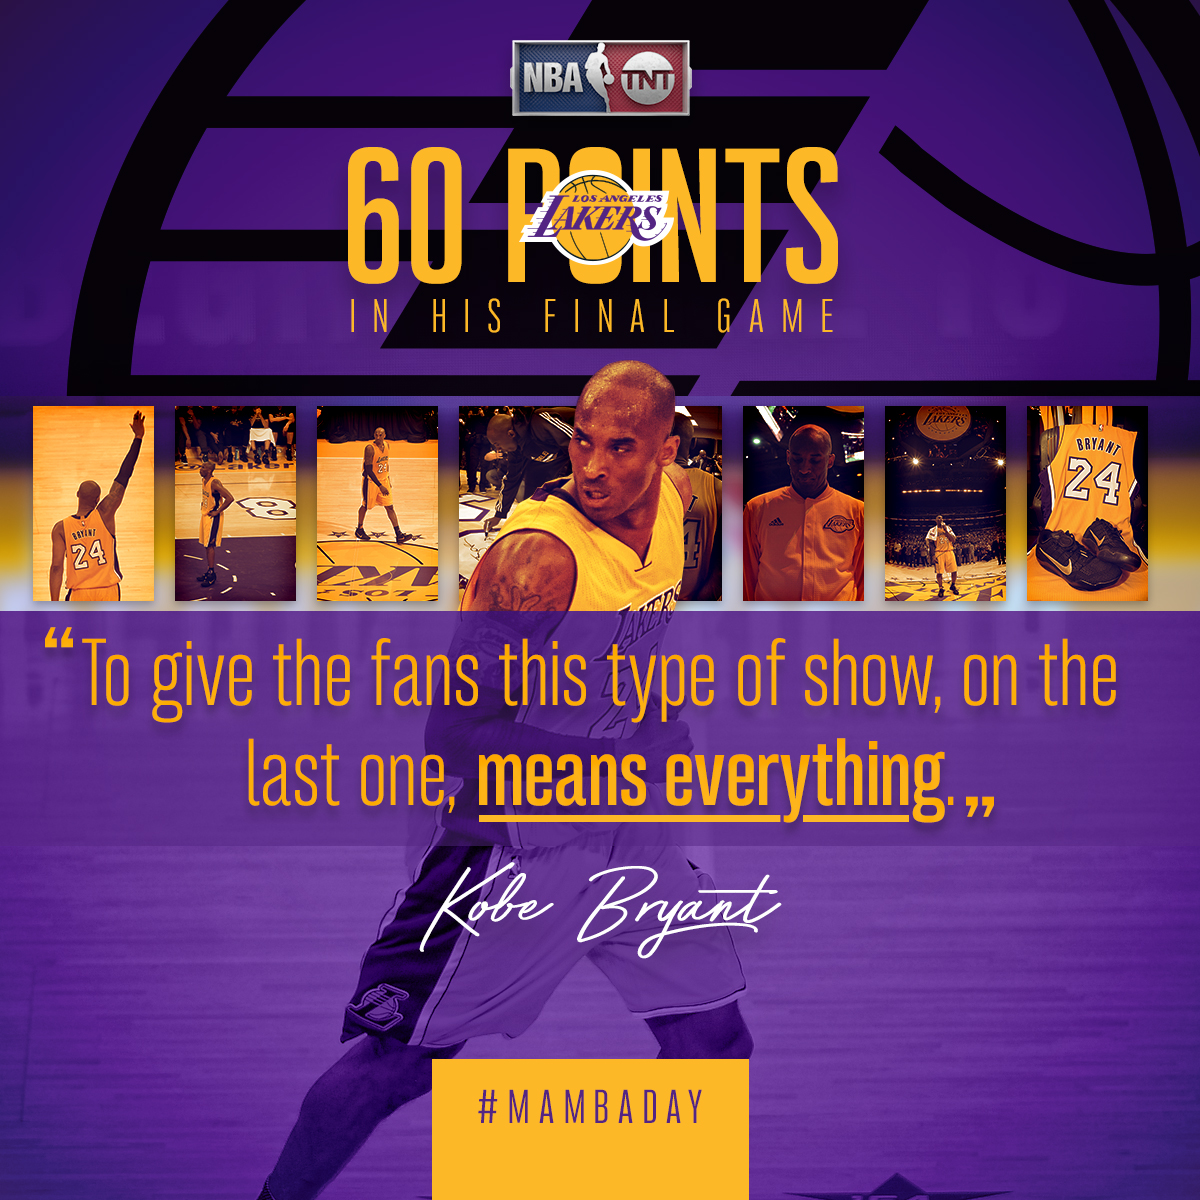 Kobe's last game graphic